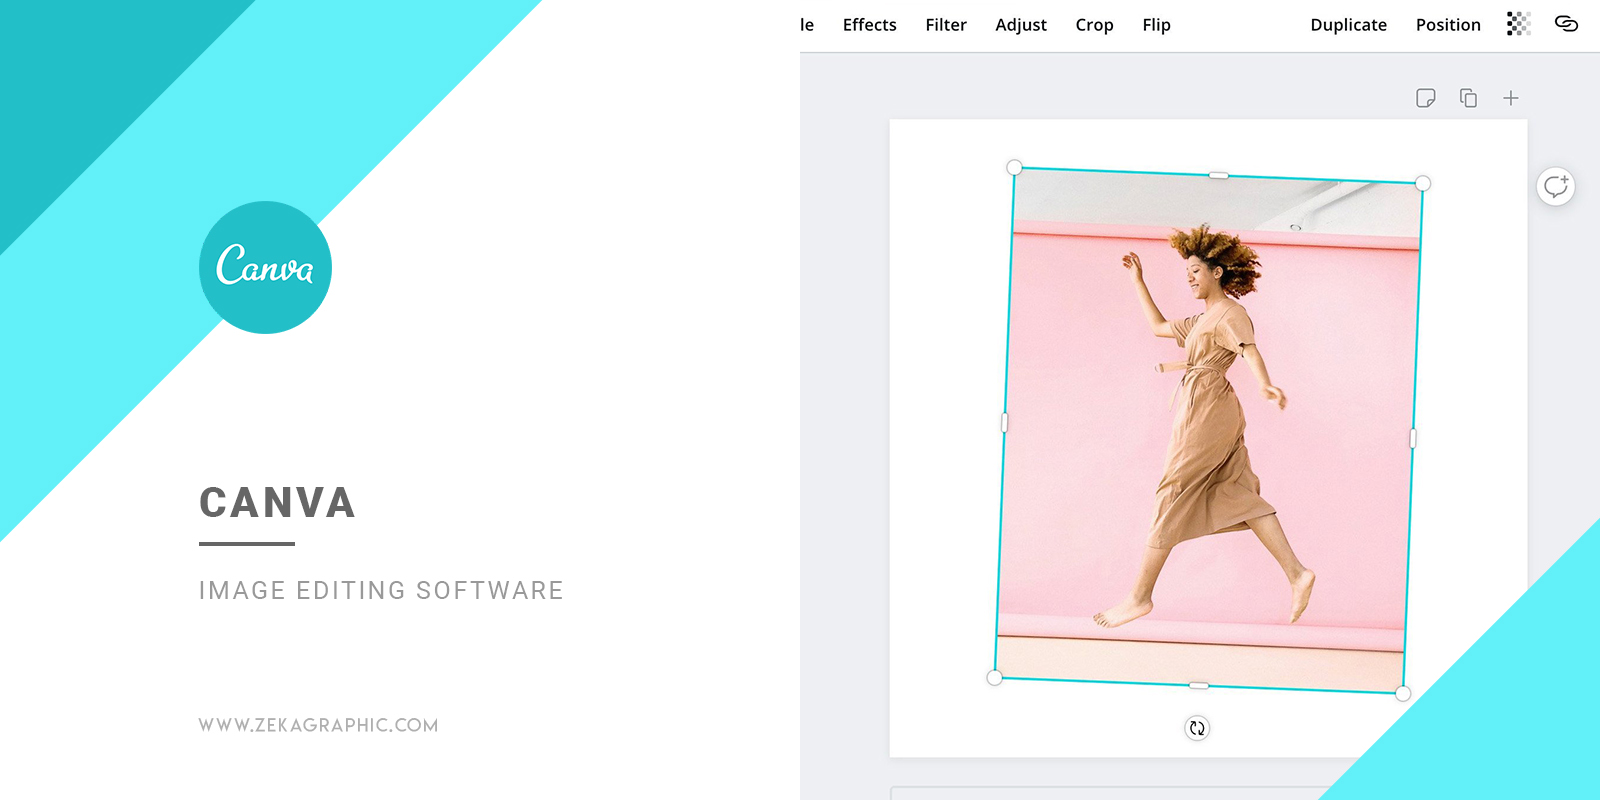 Canva Image Editing Software for Graphic Design